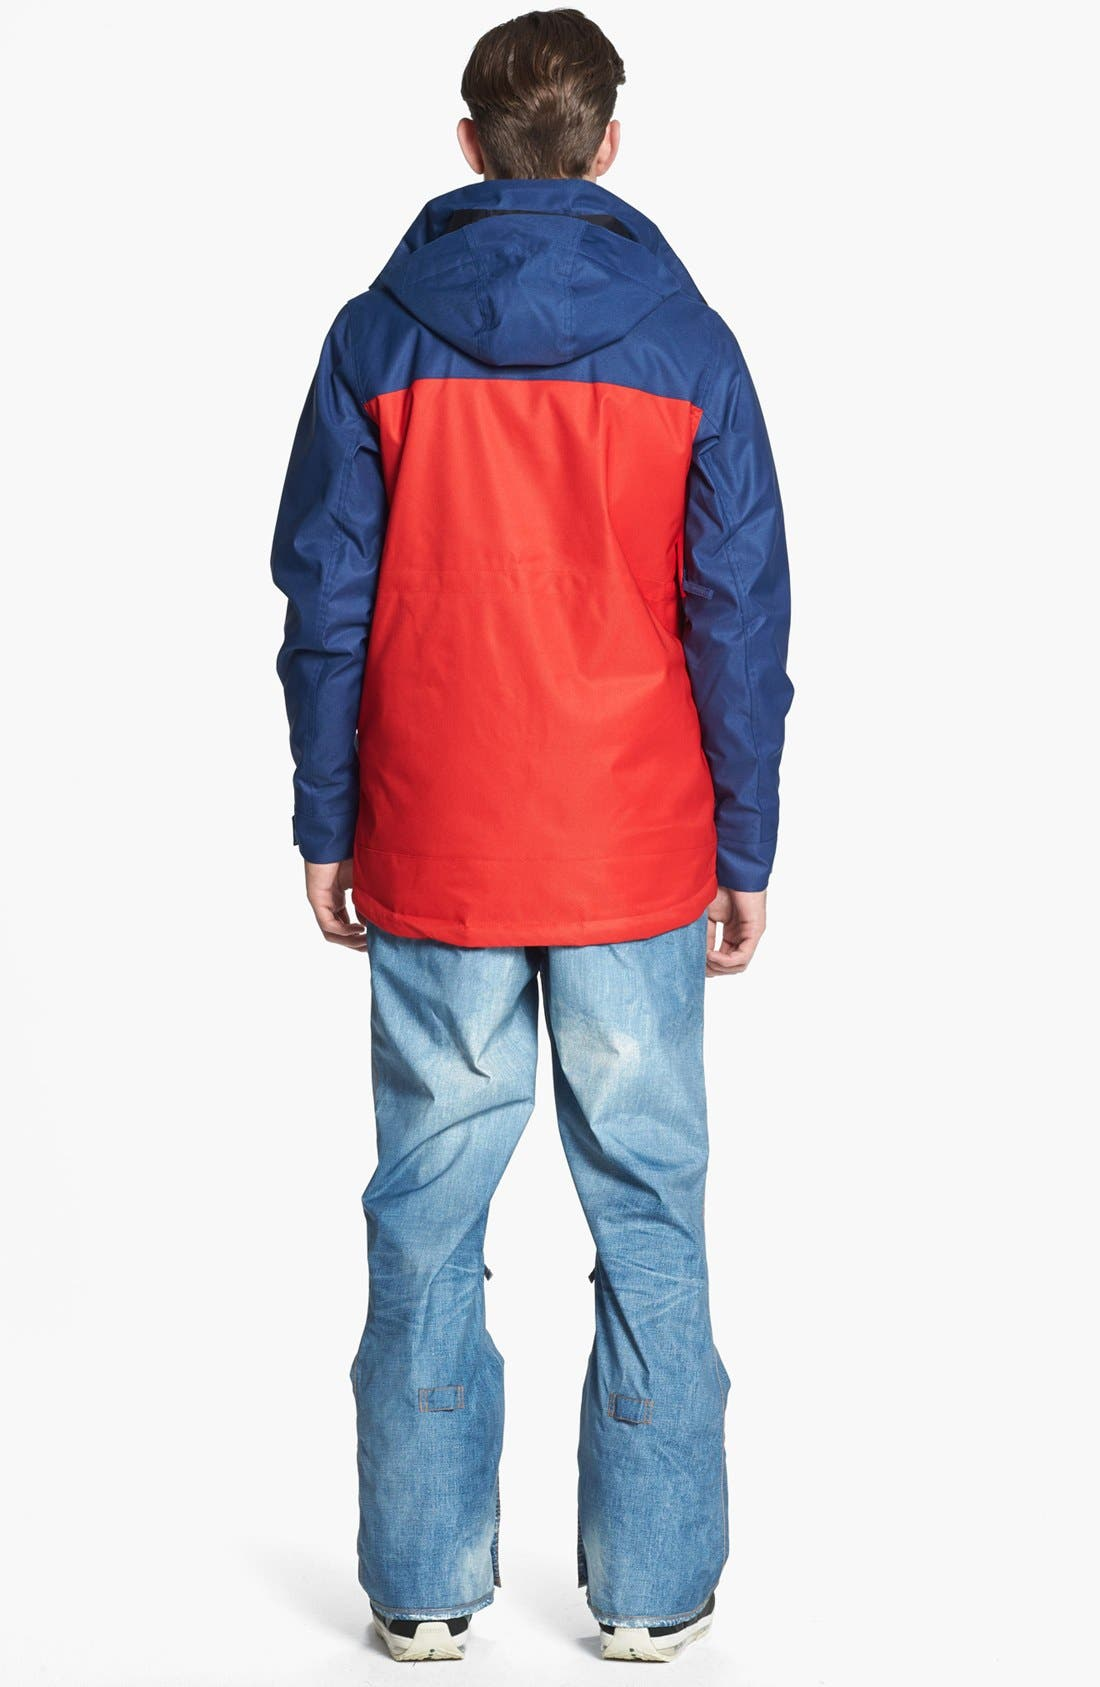 BURTON,                             'The White Collection - Cannon' Waterproof Jacket,                             Alternate thumbnail 5, color,                             414